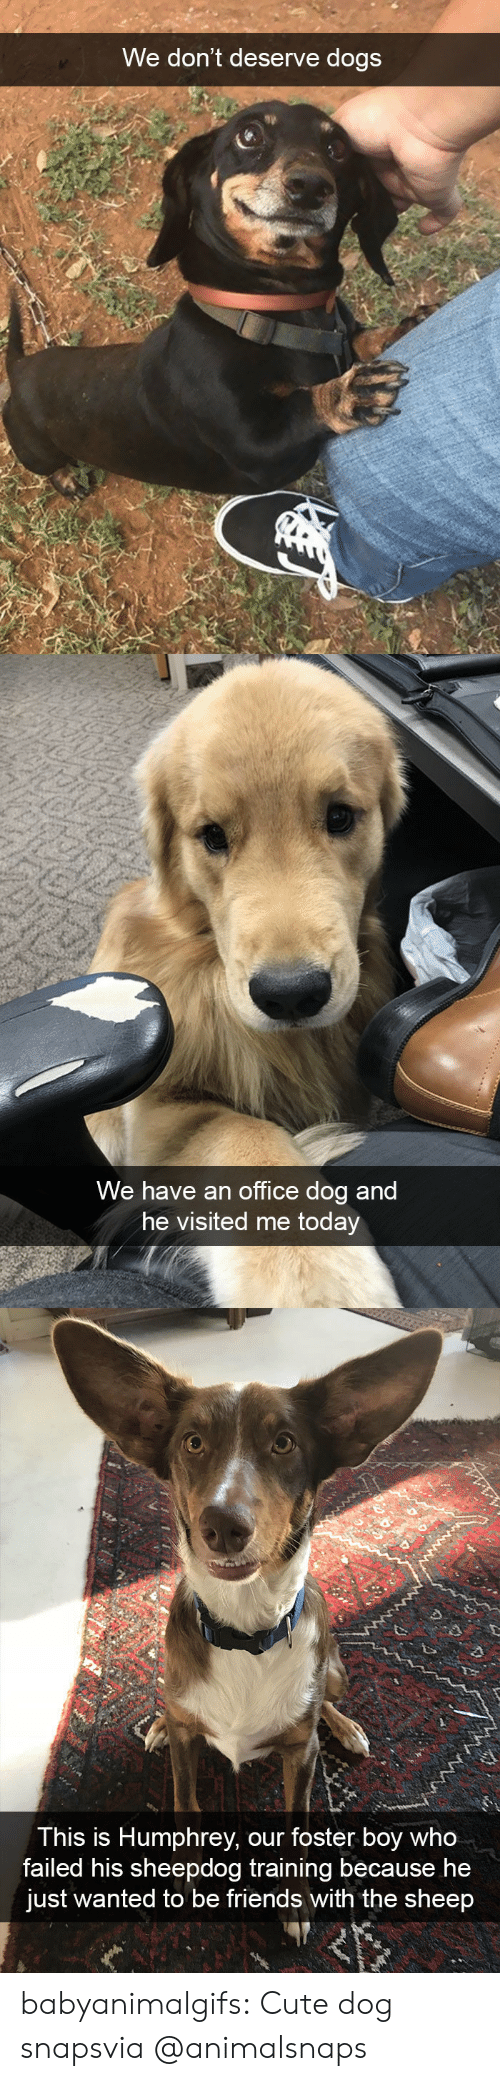 Cute, Dogs, and Friends: We don't deserve dogs   We have an office dog and  he visited me today   This is Humphrey, our foster boy who  failed his sheepdog training because he  just wanted to be friends with the sheep babyanimalgifs:  Cute dog snapsvia @animalsnaps